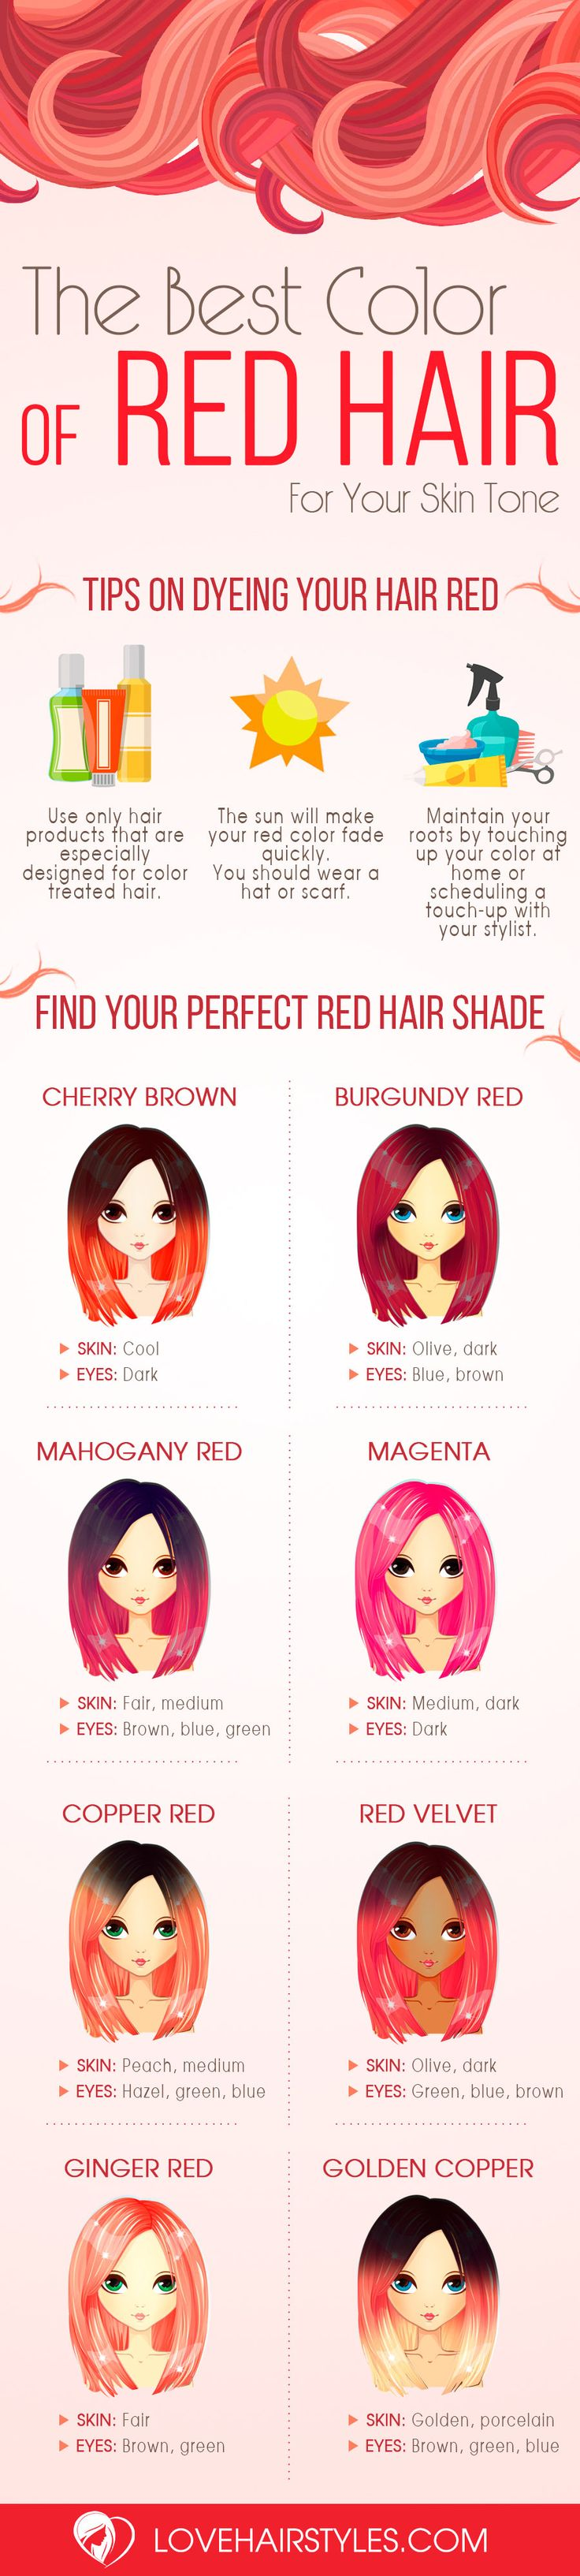 How To Choose The Best Color of Red Hair For Your Skin Tone ★ See more: http://lovehairstyles.com/red-hair-best-color/